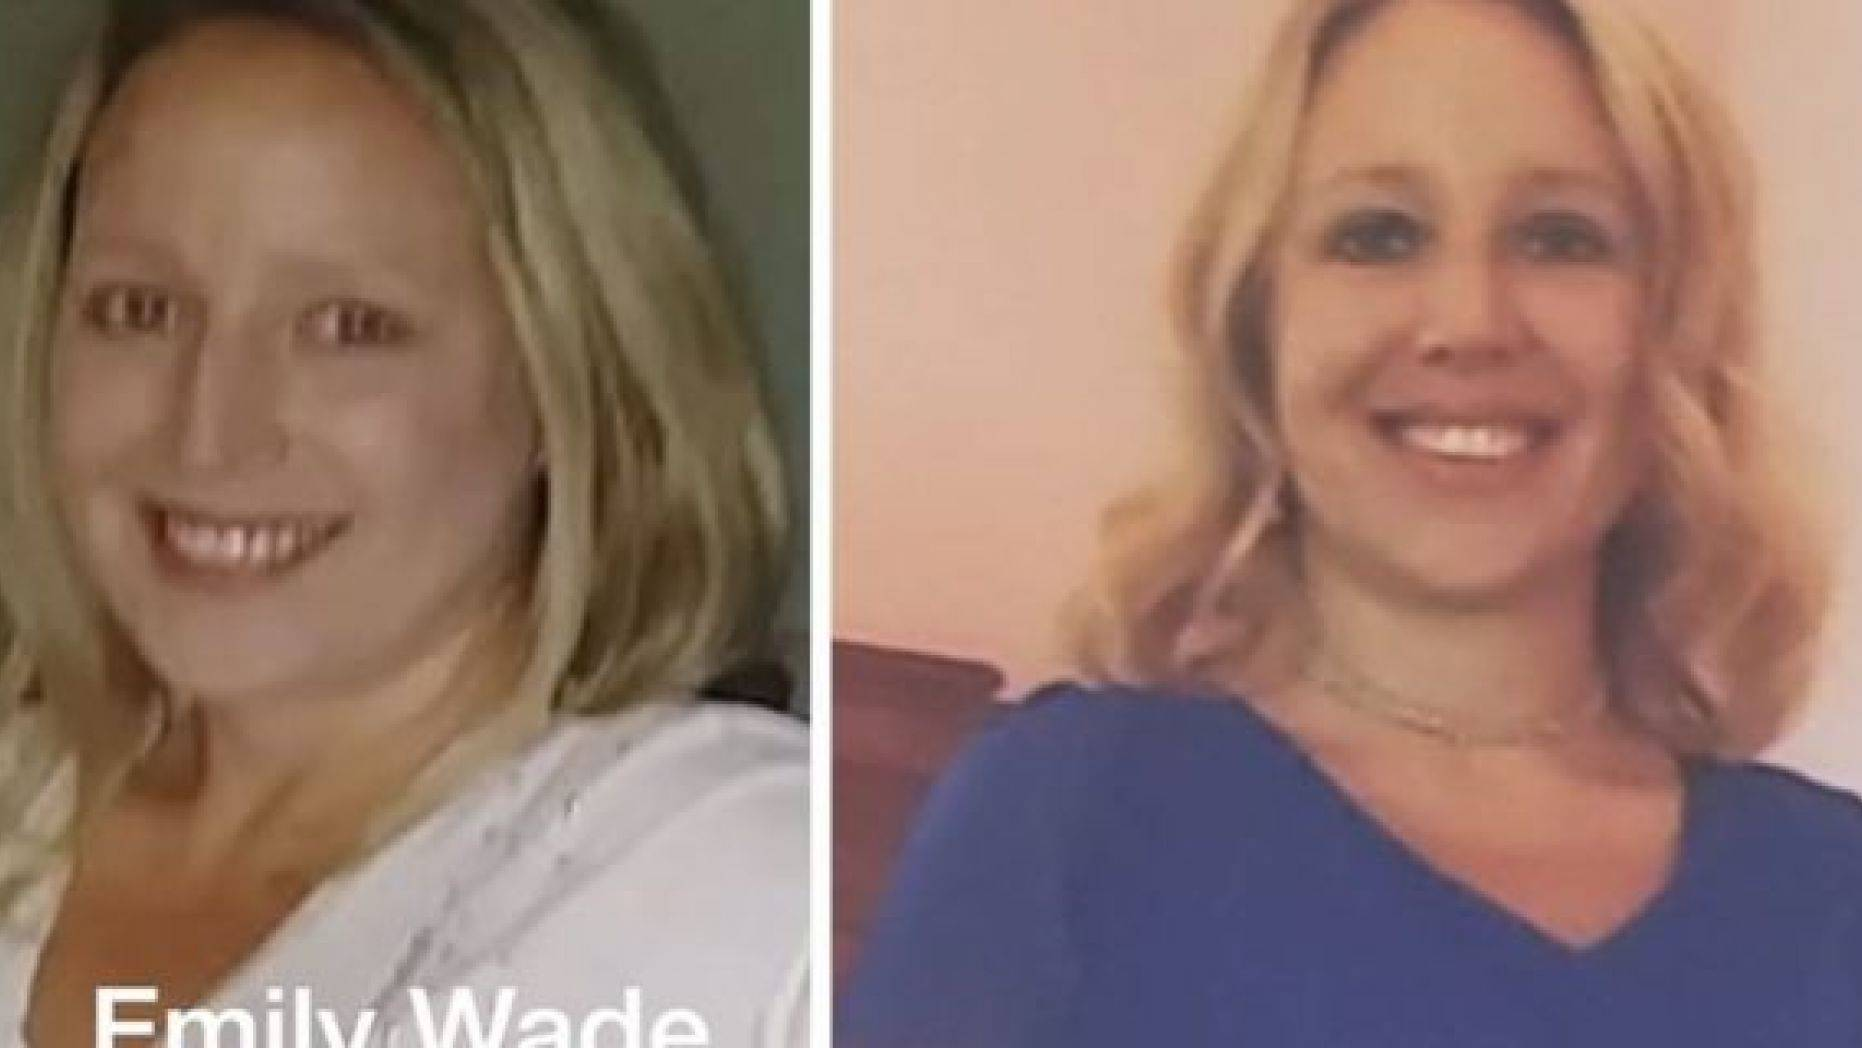 Body found in Texas believed to be missing mom Emily Wade, police say |